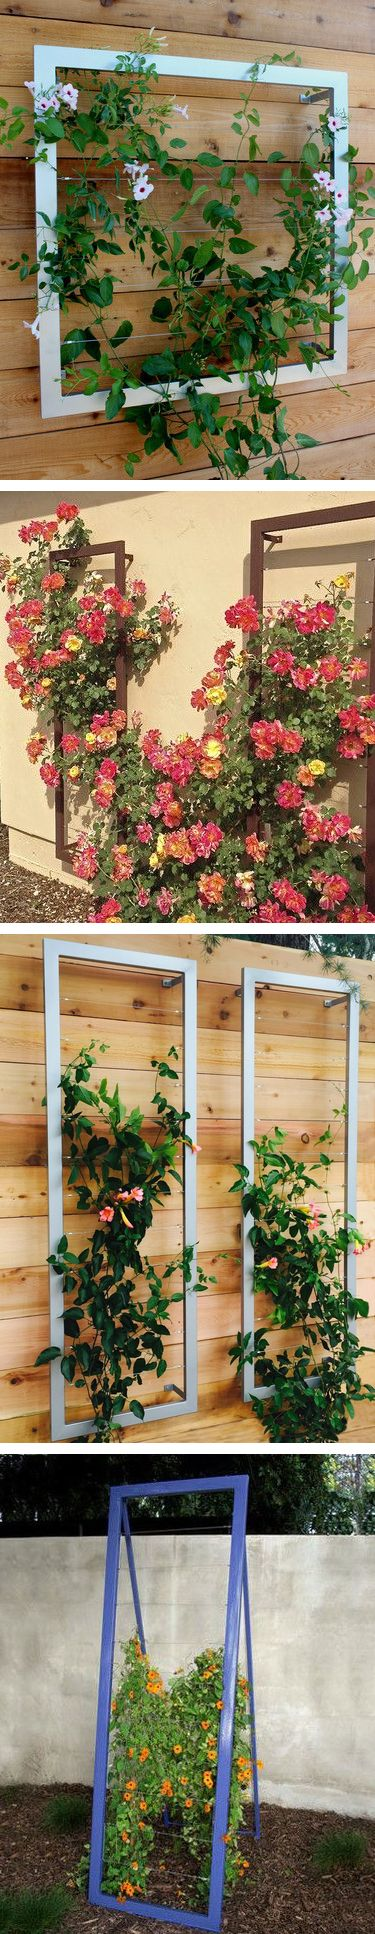 So Many Trellises, So Little Time. Space Saving Trellises Help Climbers  Have A Place